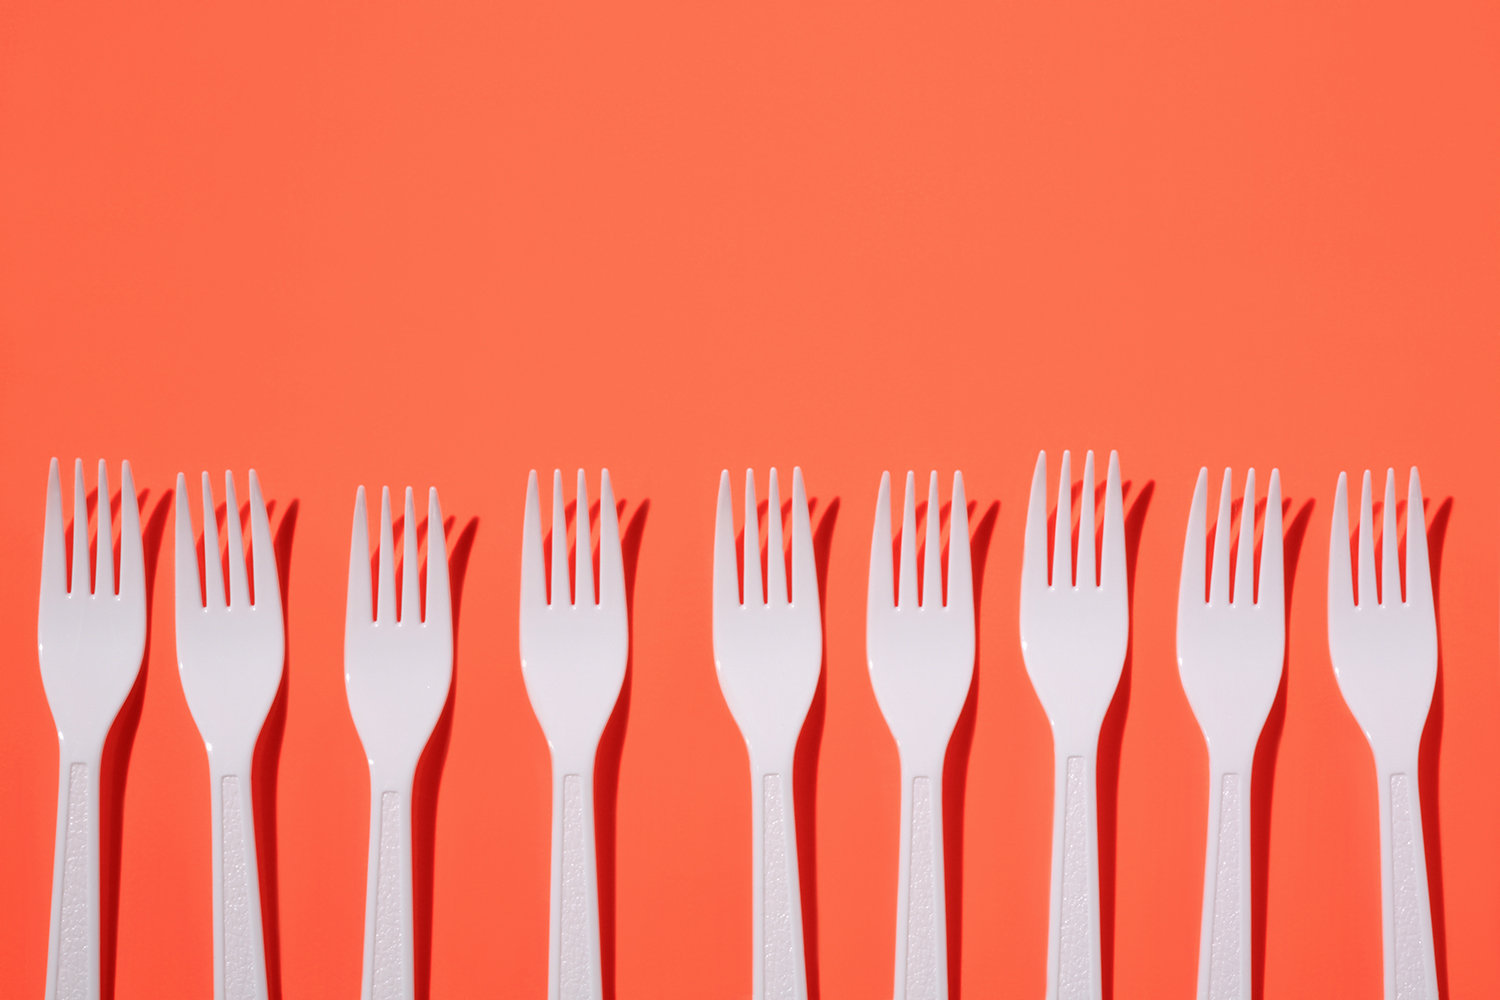 Plastic Forks Banned in France